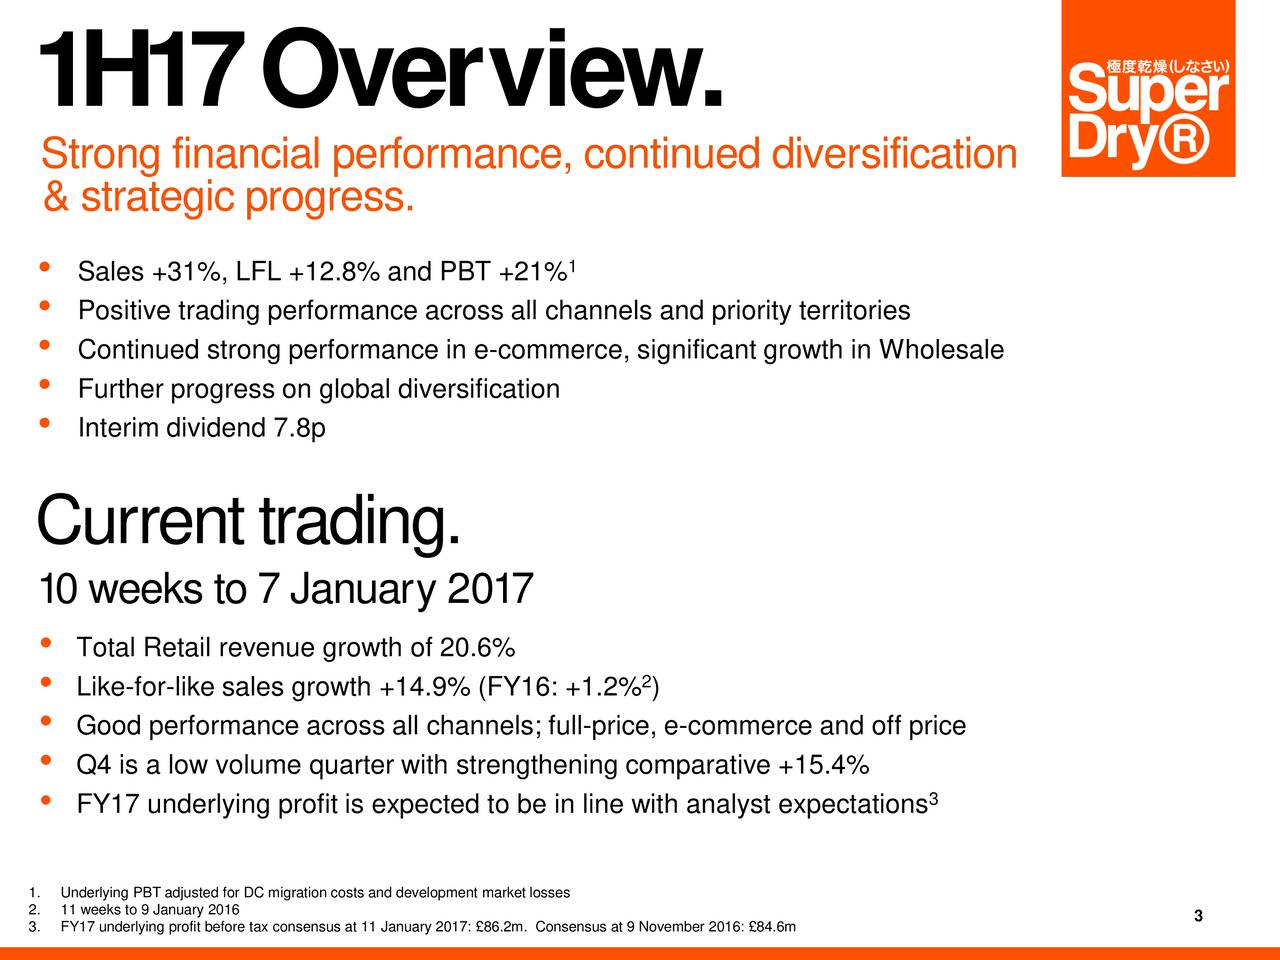 Strong financial performance, continued divs efication & strategic progress. Sales +31%, LFL +12.8% and PBT +21% Positive trading performance across all channels and priority territories Continued strong performance in e-commerce, significant growth in Wholesale Interim dividend 7.8plobal diversification Cu rrent trading. 10 weeks to 7 Janua r 2017 Total Retail revenue growth of 22.6% Like-for-like sales growth +14.9% (FY16: +1.2% ) Good performance across all channels; full-price, e-commerce and off price FY17 underlying profit is expected to be in line with analyst expectations 1.Underlying PBT adjusted for DC migration costs and development market losses 3.FY17 underlying profit before tax consensus at 11 January 2017: 86.2m. Consensus at 9 November 2016: 84.6m